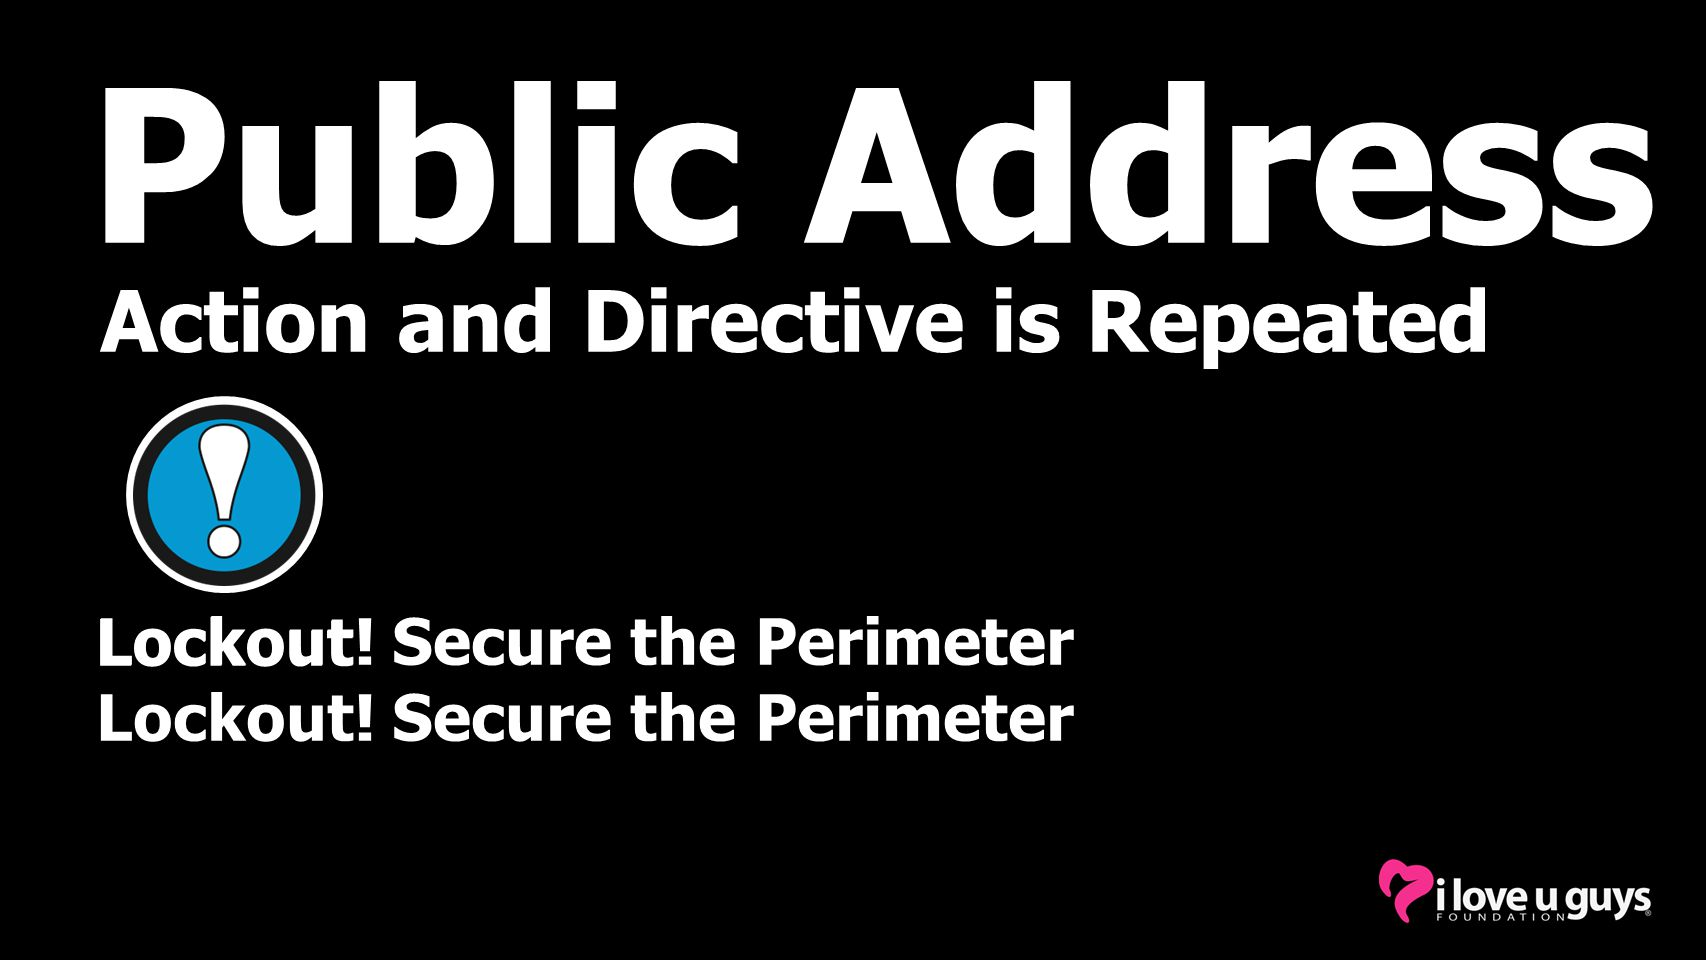 Public Address Action and Directive is Repeated Lockdown Evacuate